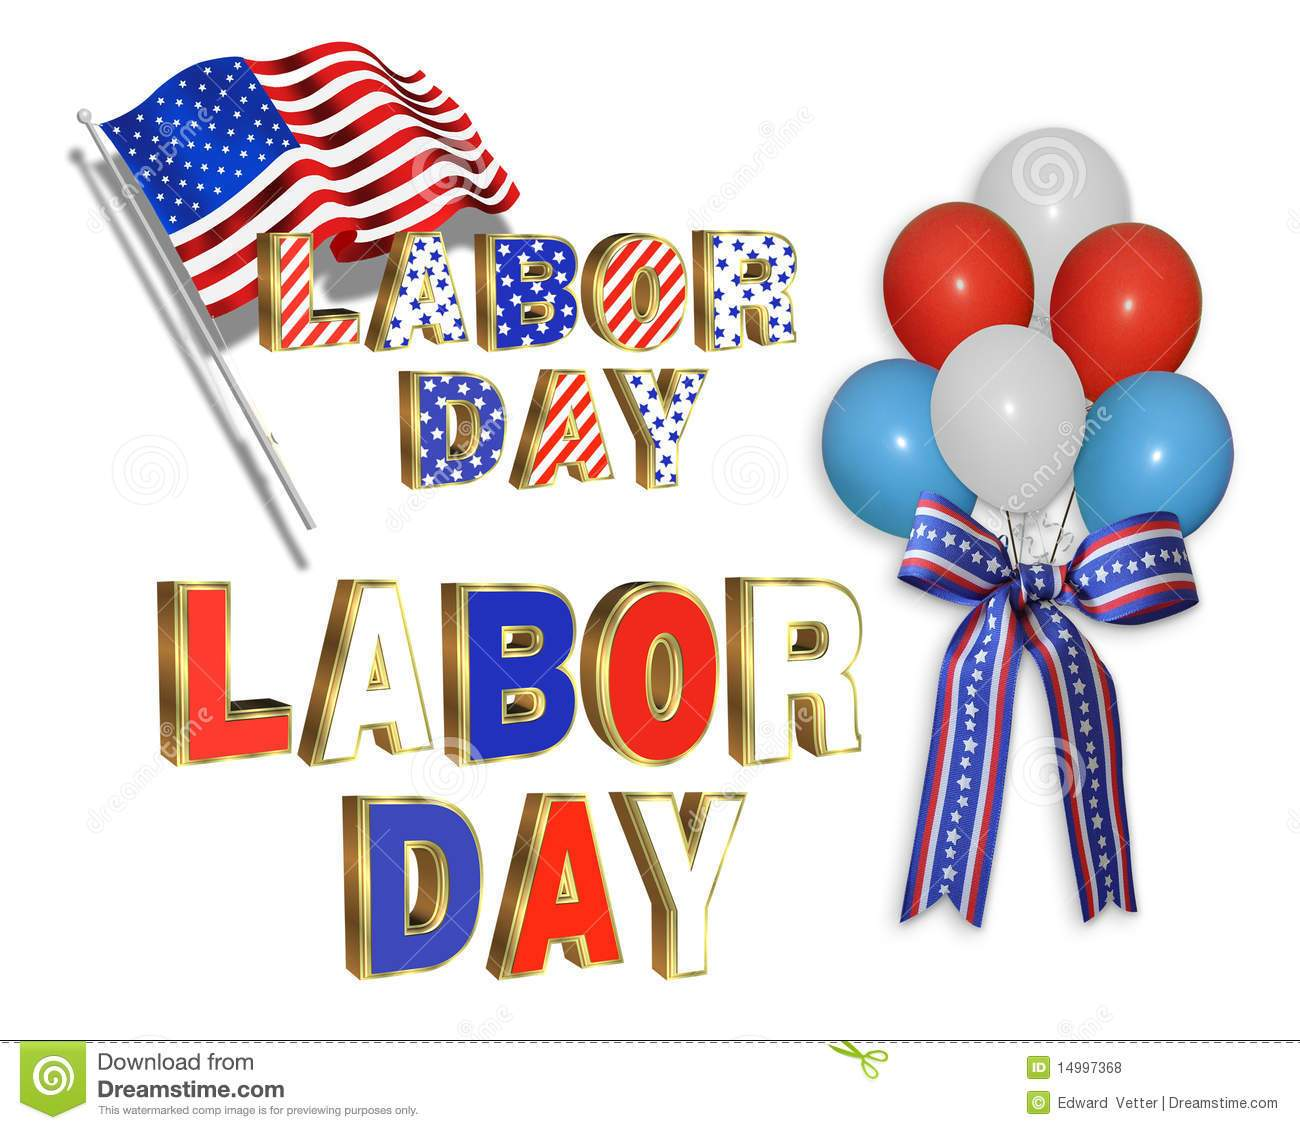 Free clipart images labor day 7 » Clipart Portal.